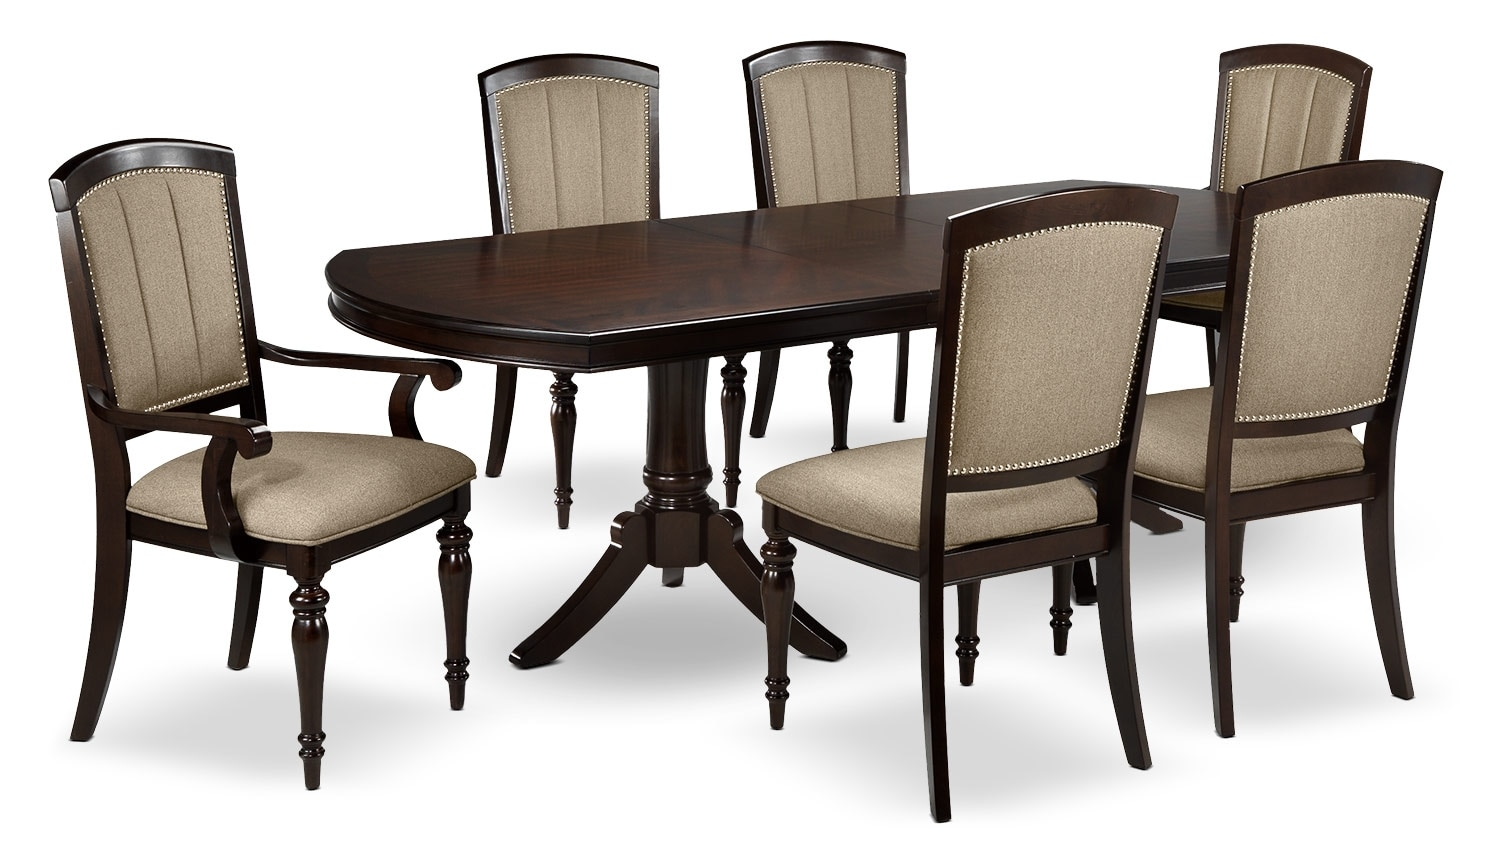 Dining Room Furniture - Thoreaux 7-Piece Dining Room Set - Dark Cherry